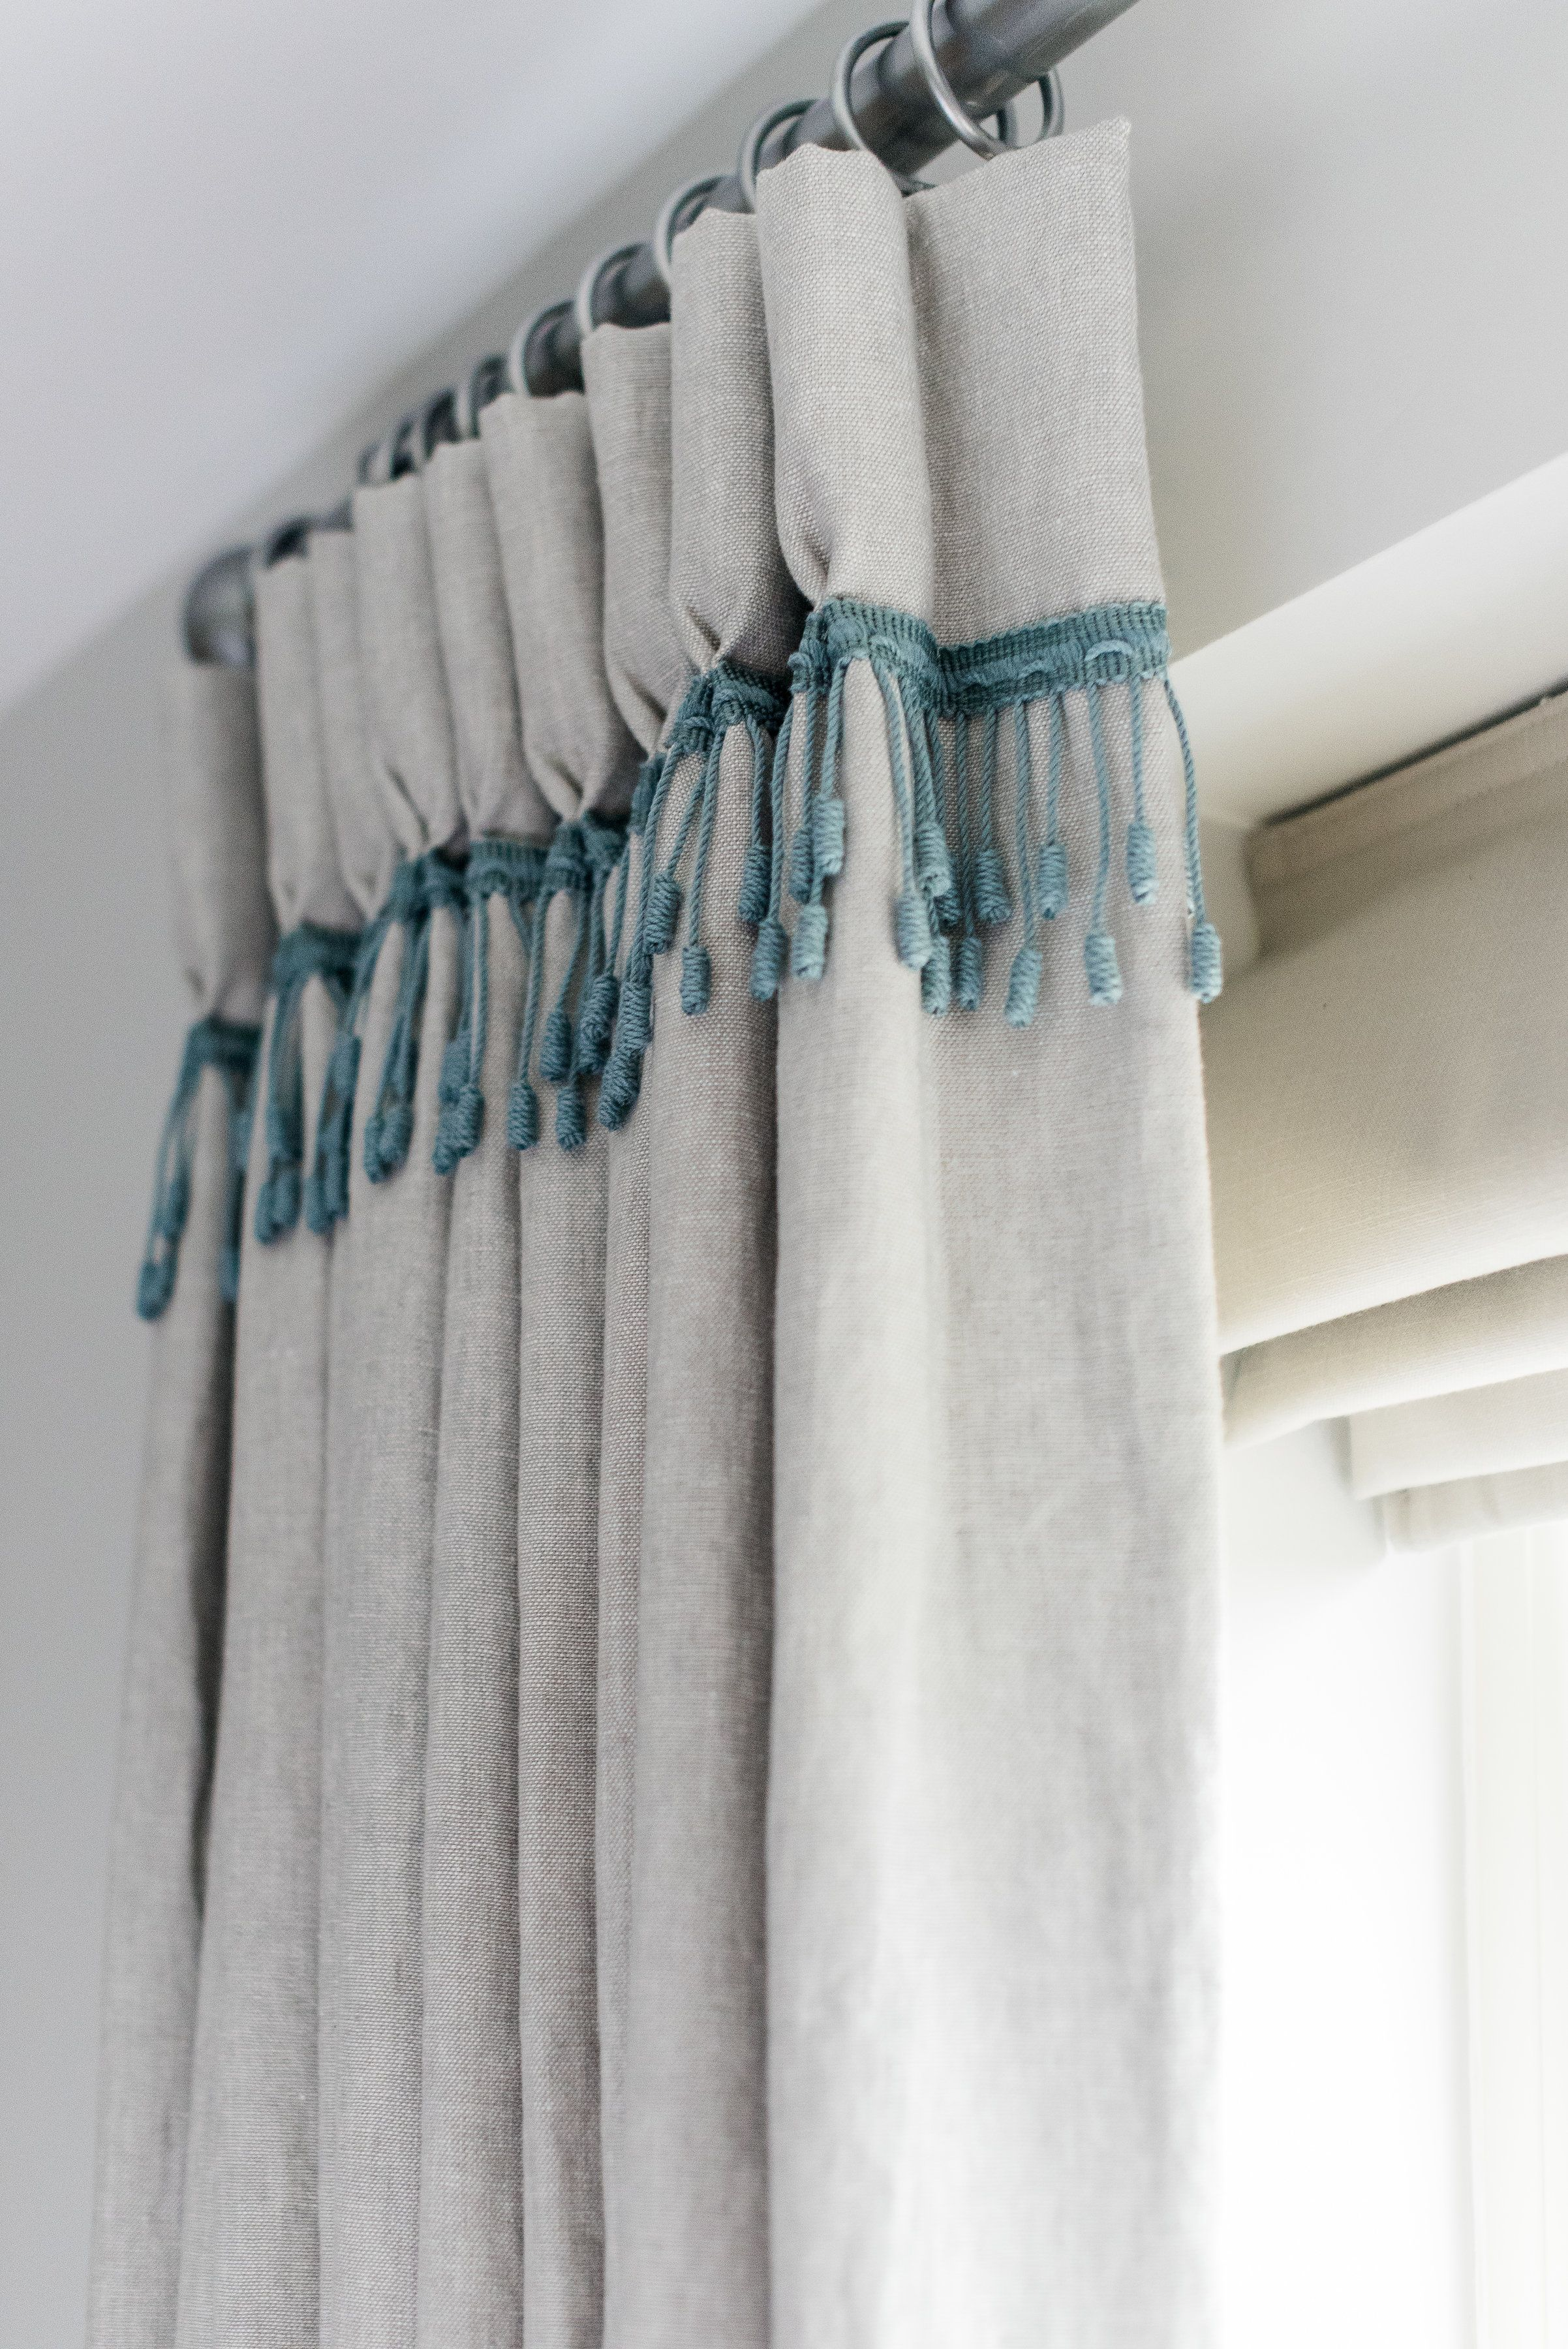 Beading On Curtains How To Make Your Curtains Different Bedroom Curtains With Blinds Curtains With Blinds Diy Window Treatments